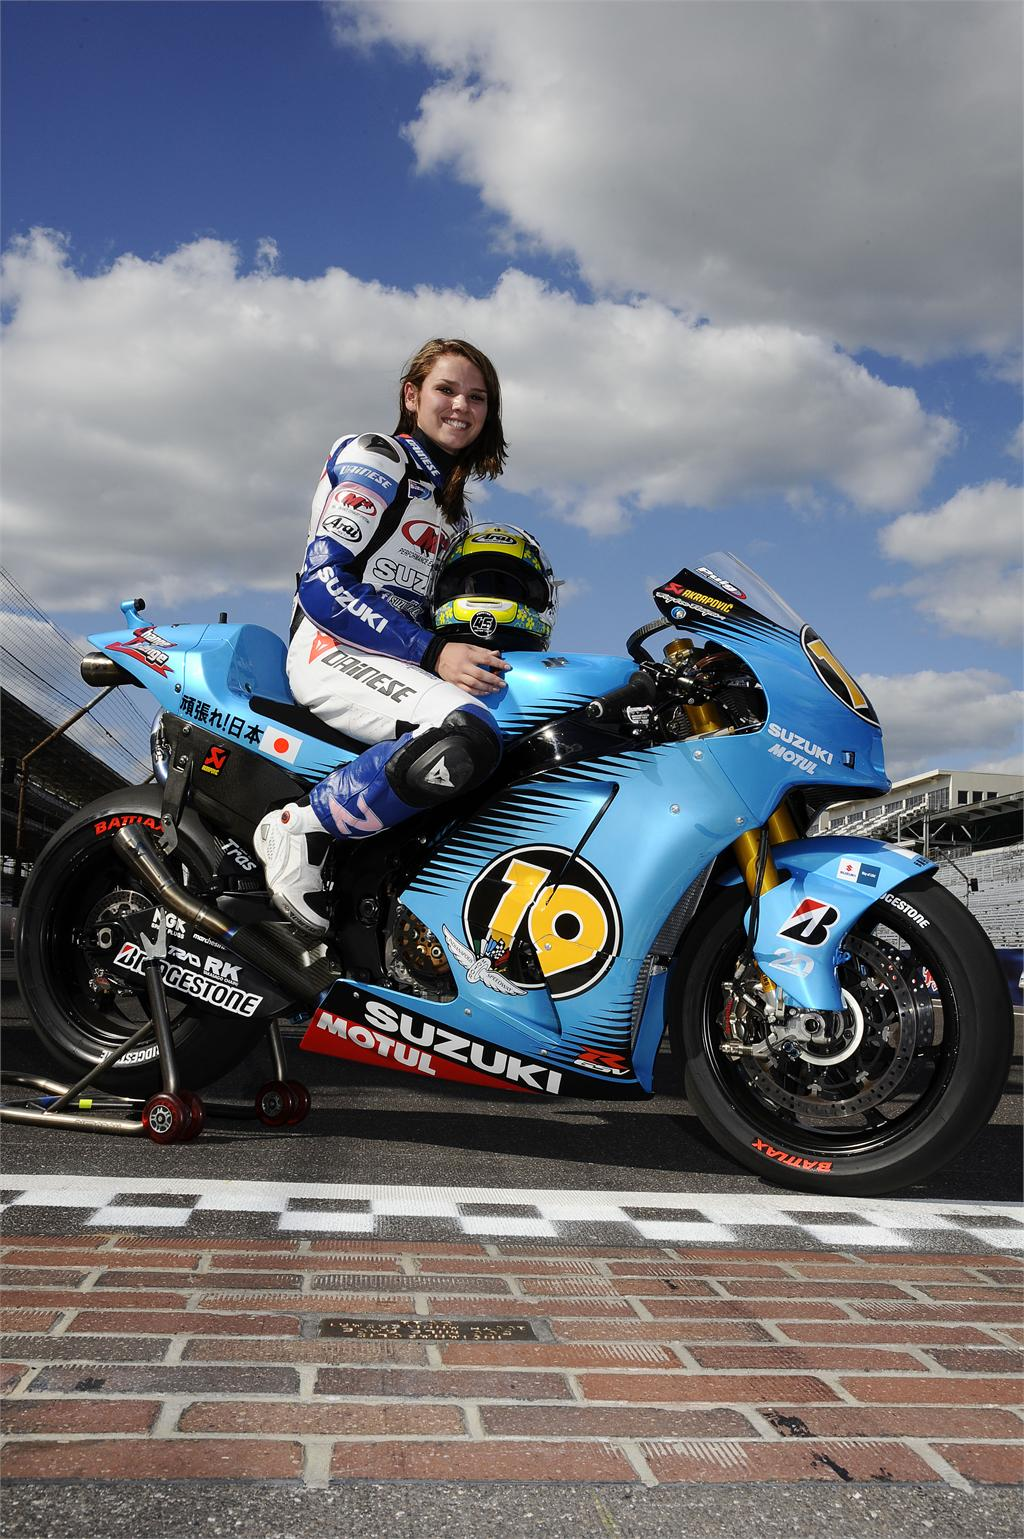 190 mph: Elena Myers Riding the Suzuki GSV-R at Indianapolis Motor Speedway - Motorcycle.com News